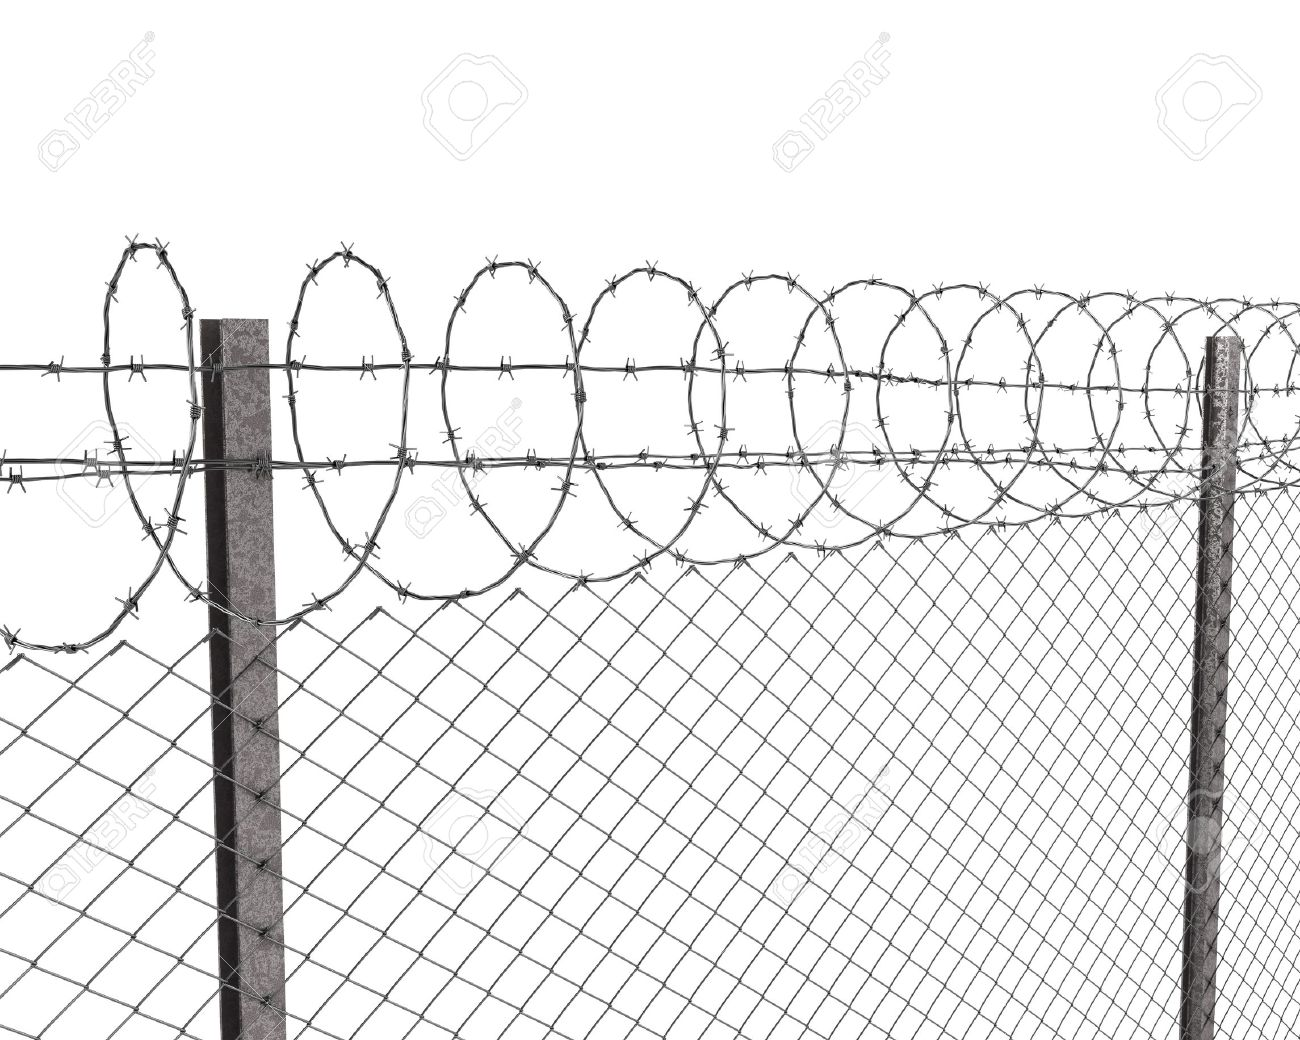 Wire clipart fencing wire 228KB white fence Fence:Chainlink 1300x1040